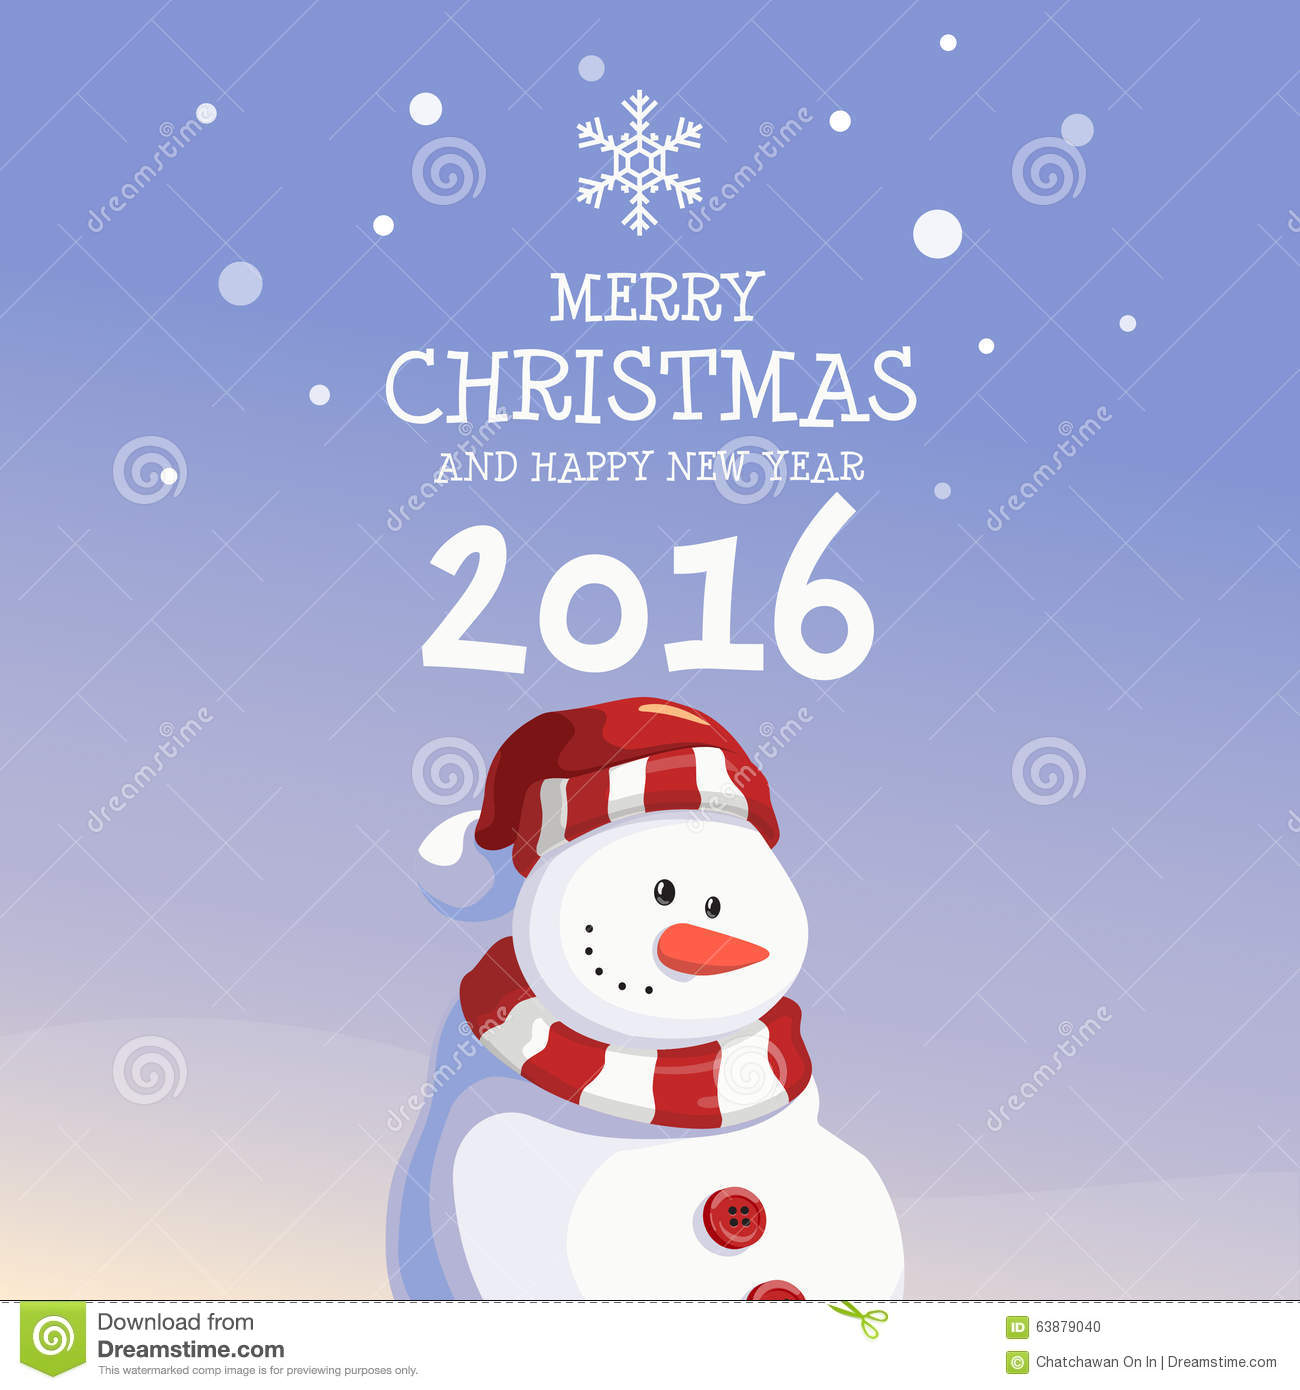 Snowman merry christmas and happy new year stock